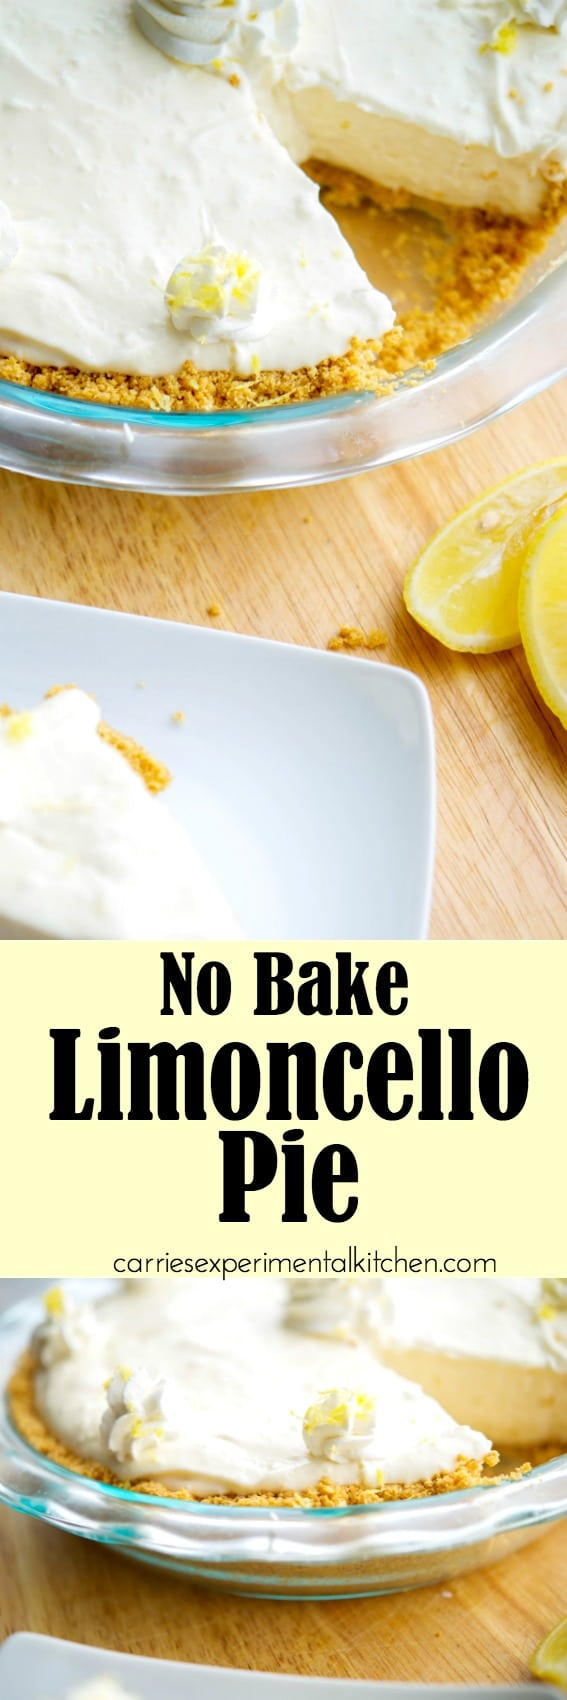 No Bake Limoncello Pie is deliciously light and lemony. A perfect dessert option without using much needed oven space during the holidays. #limoncello #lemon #pie #dessert #nobake